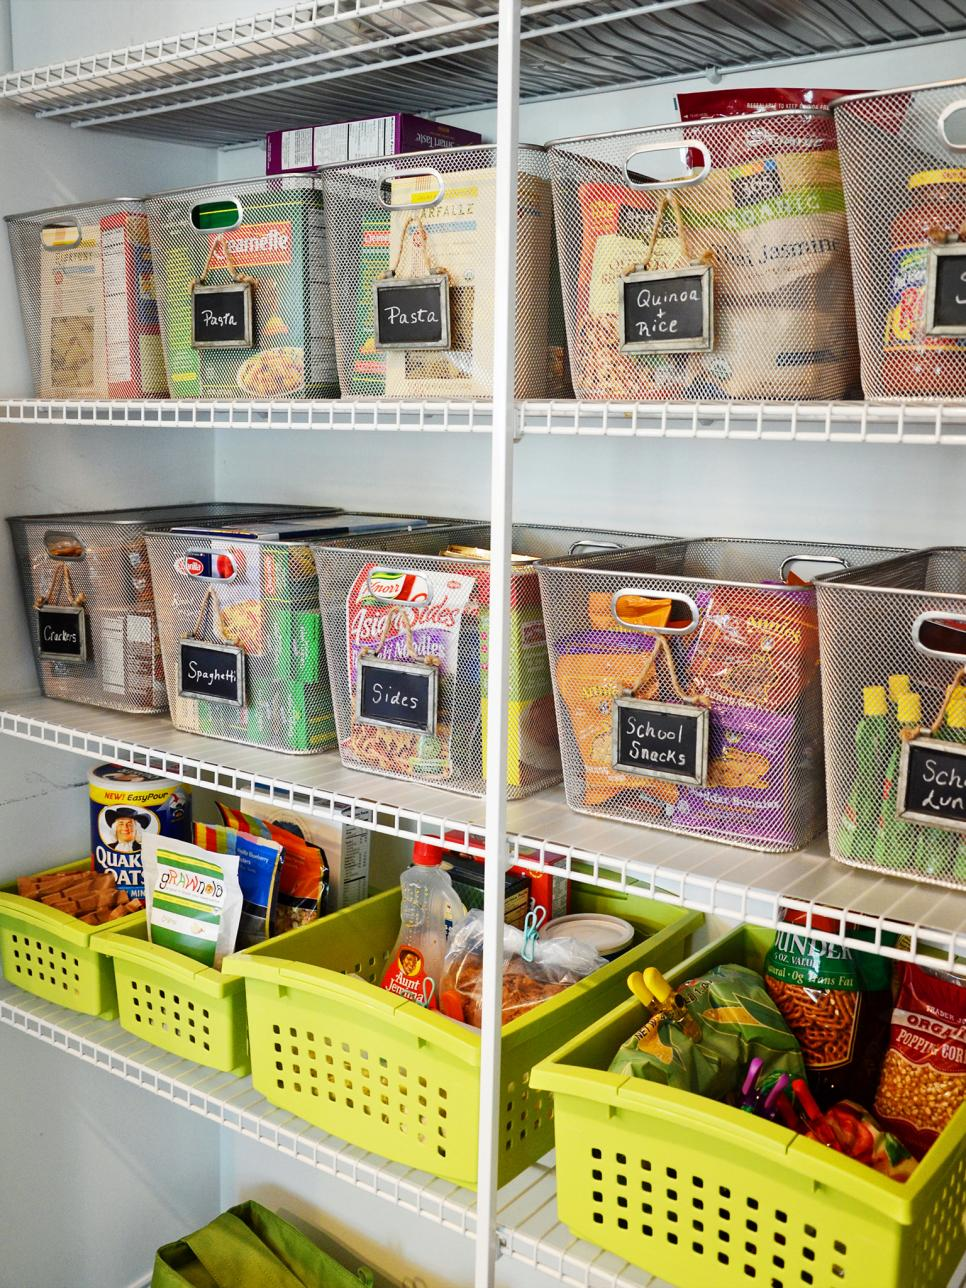 14 easy ways to organize small stuff in the kitchen pictures 14 easy ways to organize small stuff in the kitchen pictures ideas diy solutioingenieria Image collections